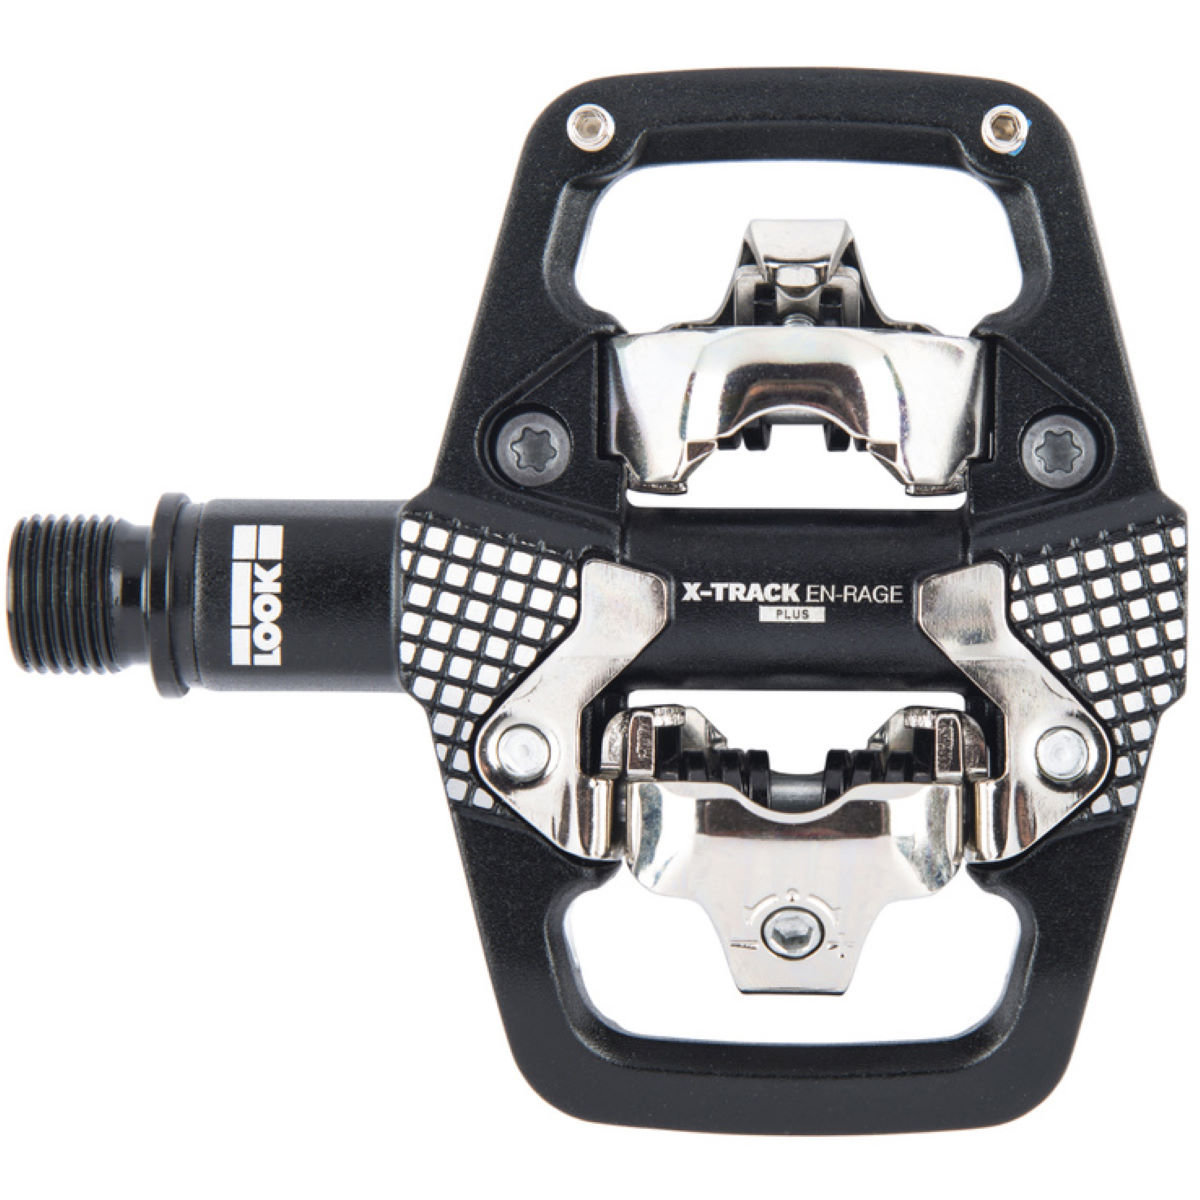 Look Look X-Track Rage + MTB Pedals   Clip-in Pedals